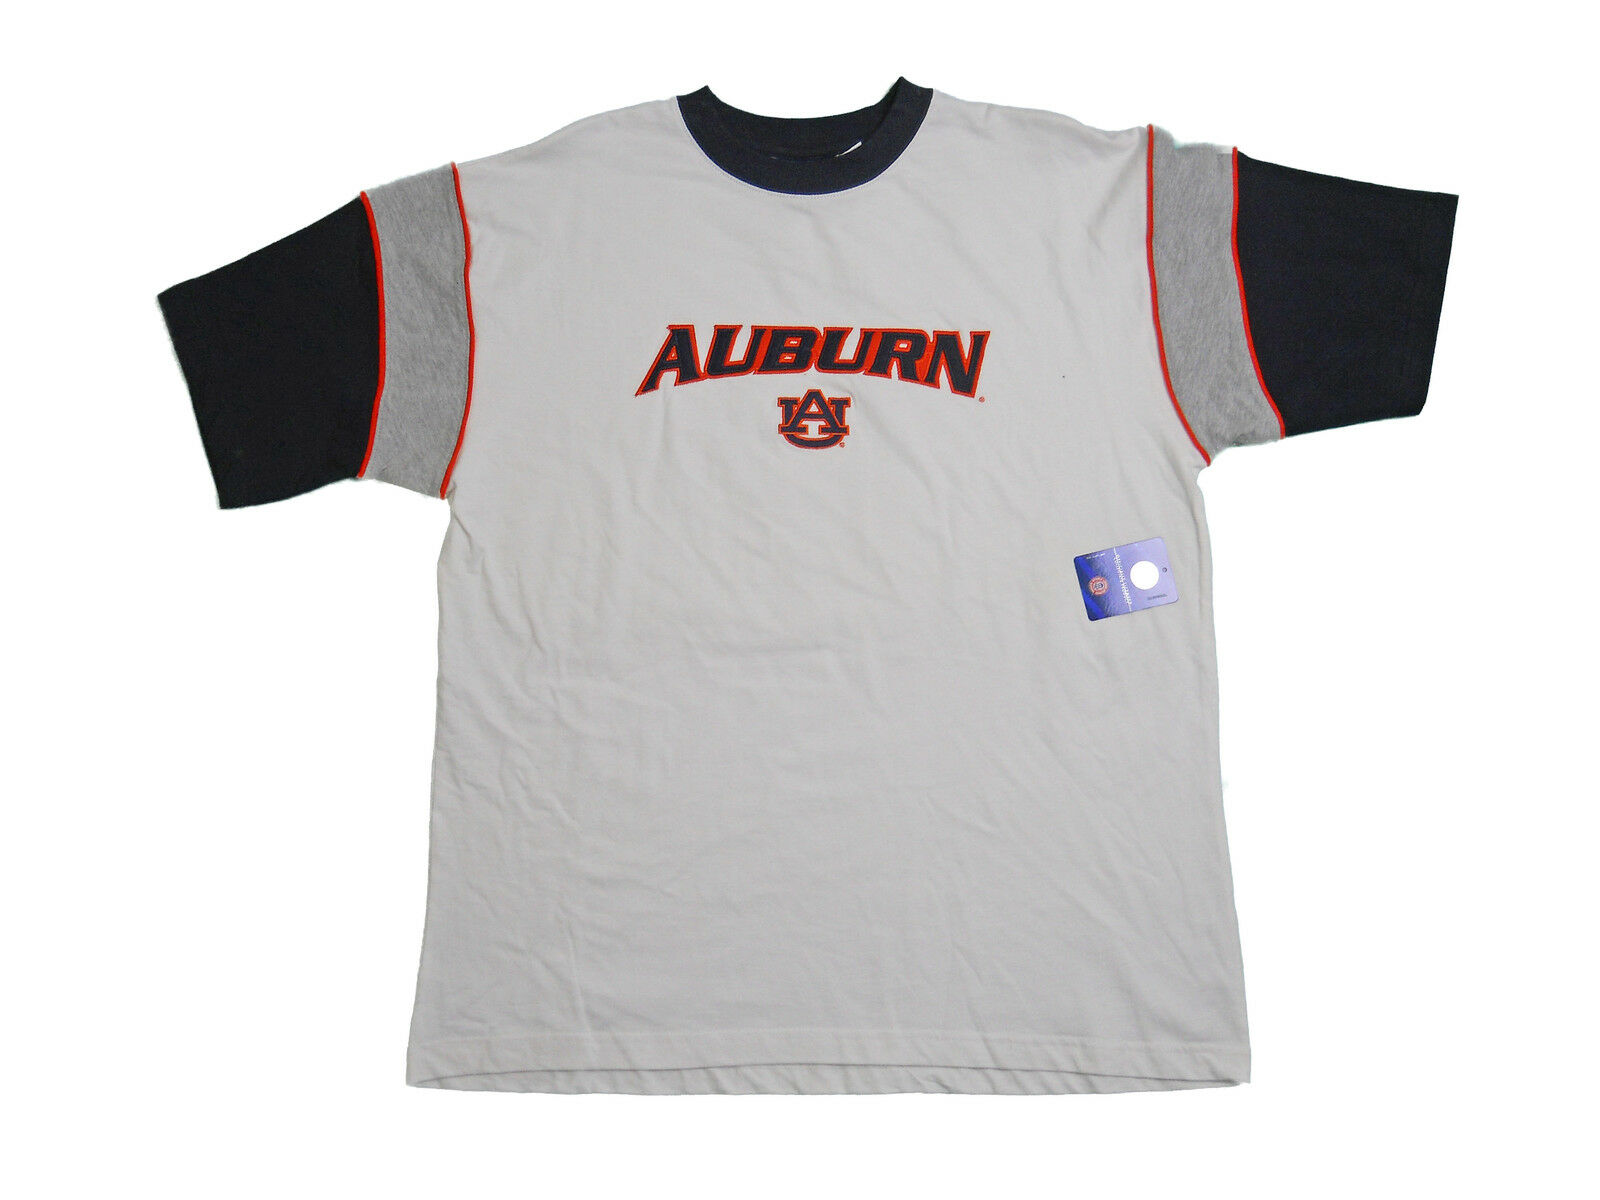 AUBURN TIGERS ADULT WHITE SHORT SLEEVE COLOR BAND DESIGN T-SHIRT NEW